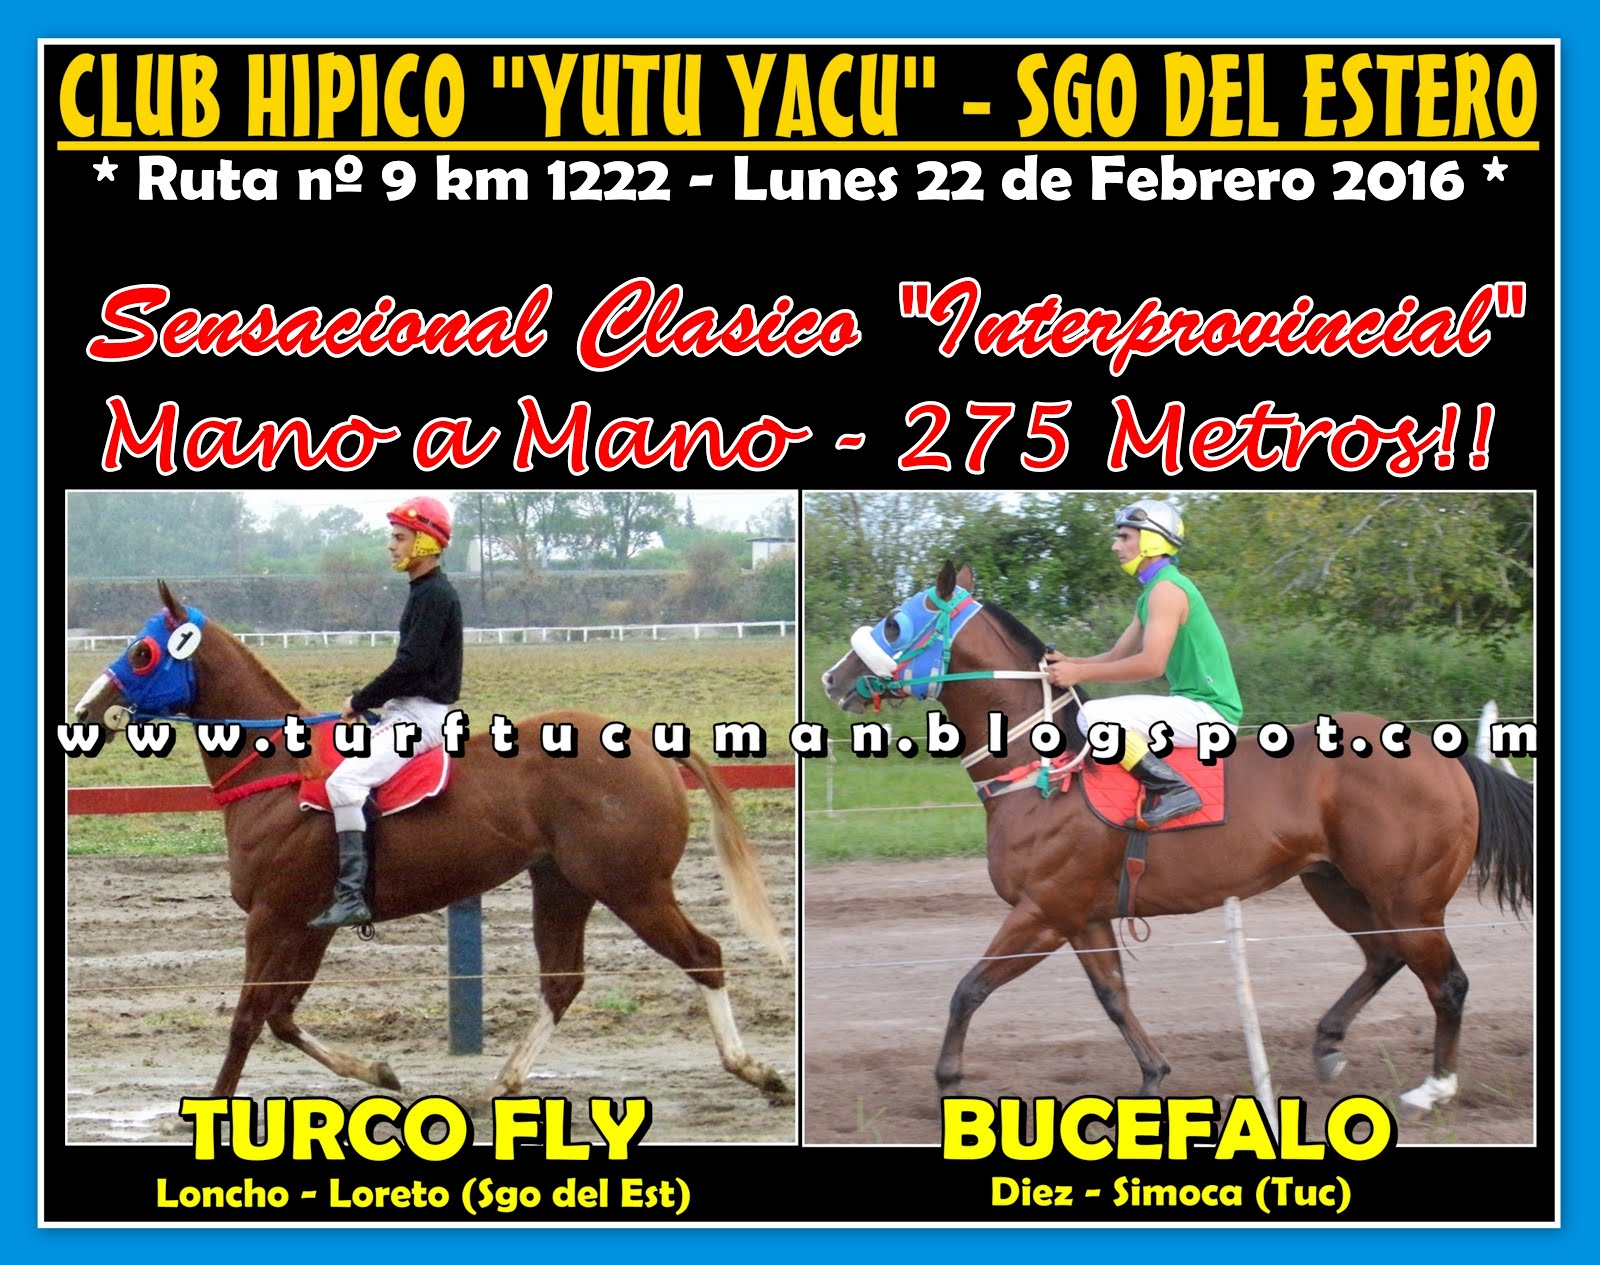 BUCEFALO VS TURCO FLY